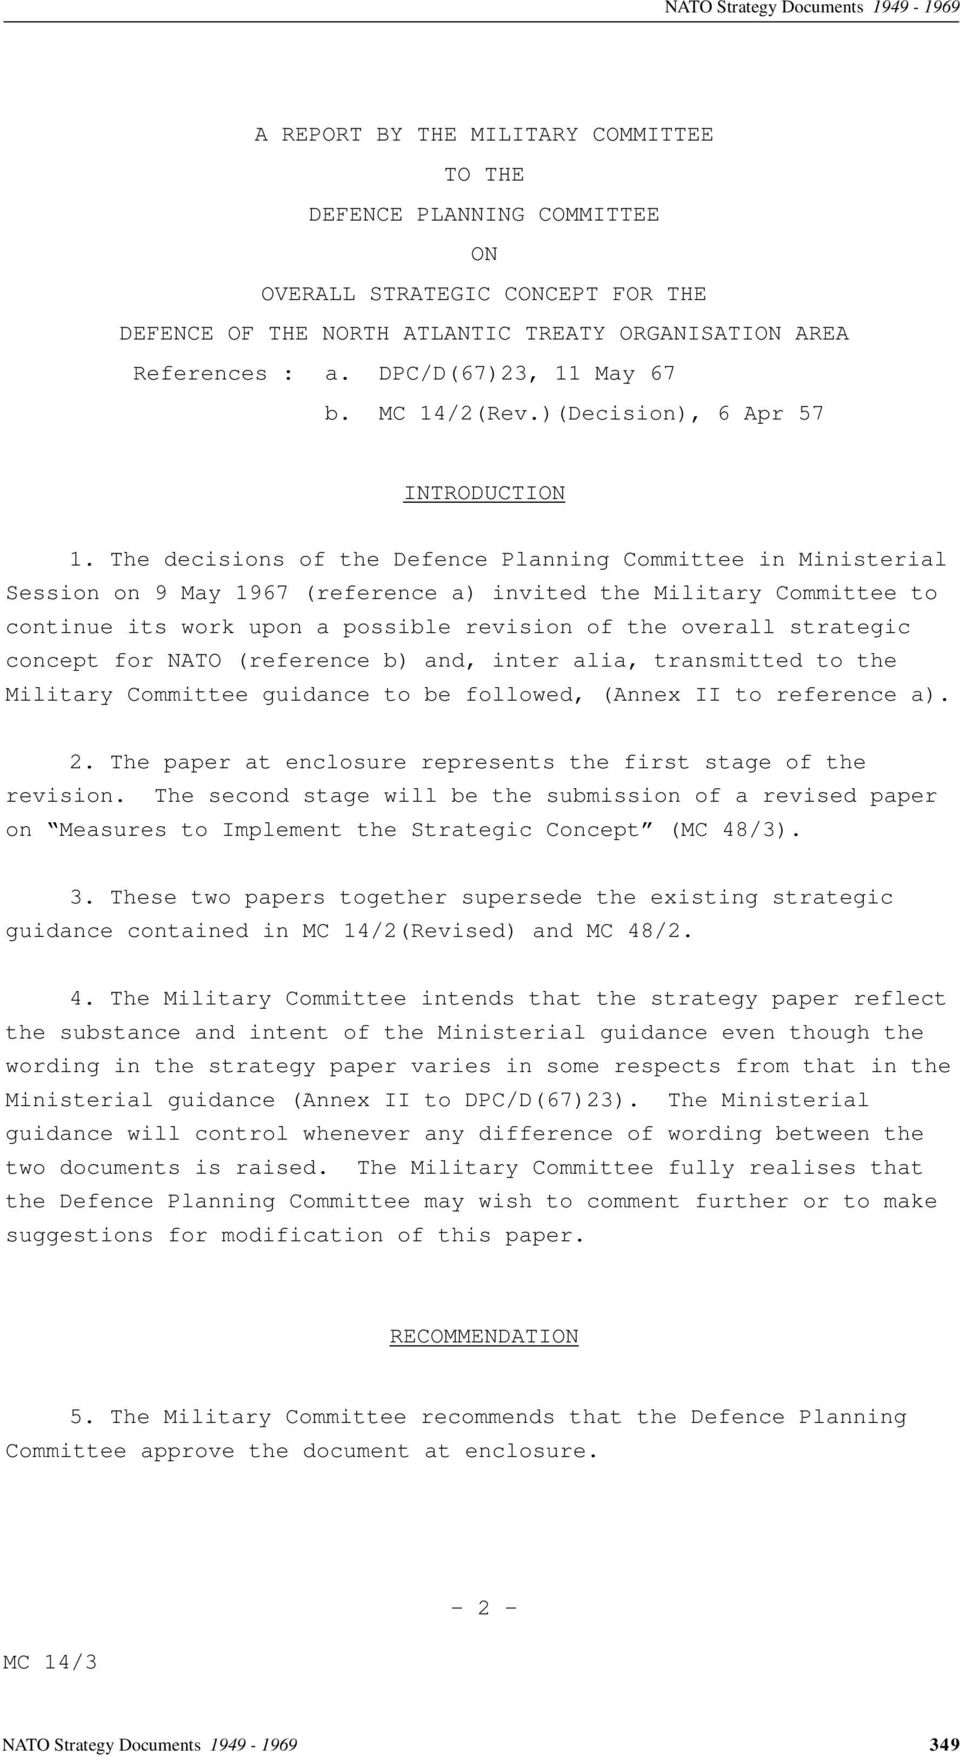 The decisions of the Defence Planning Committee in Ministerial Session on 9 May 1967 (reference a) invited the Military Committee to continue its work upon a possible revision of the overall